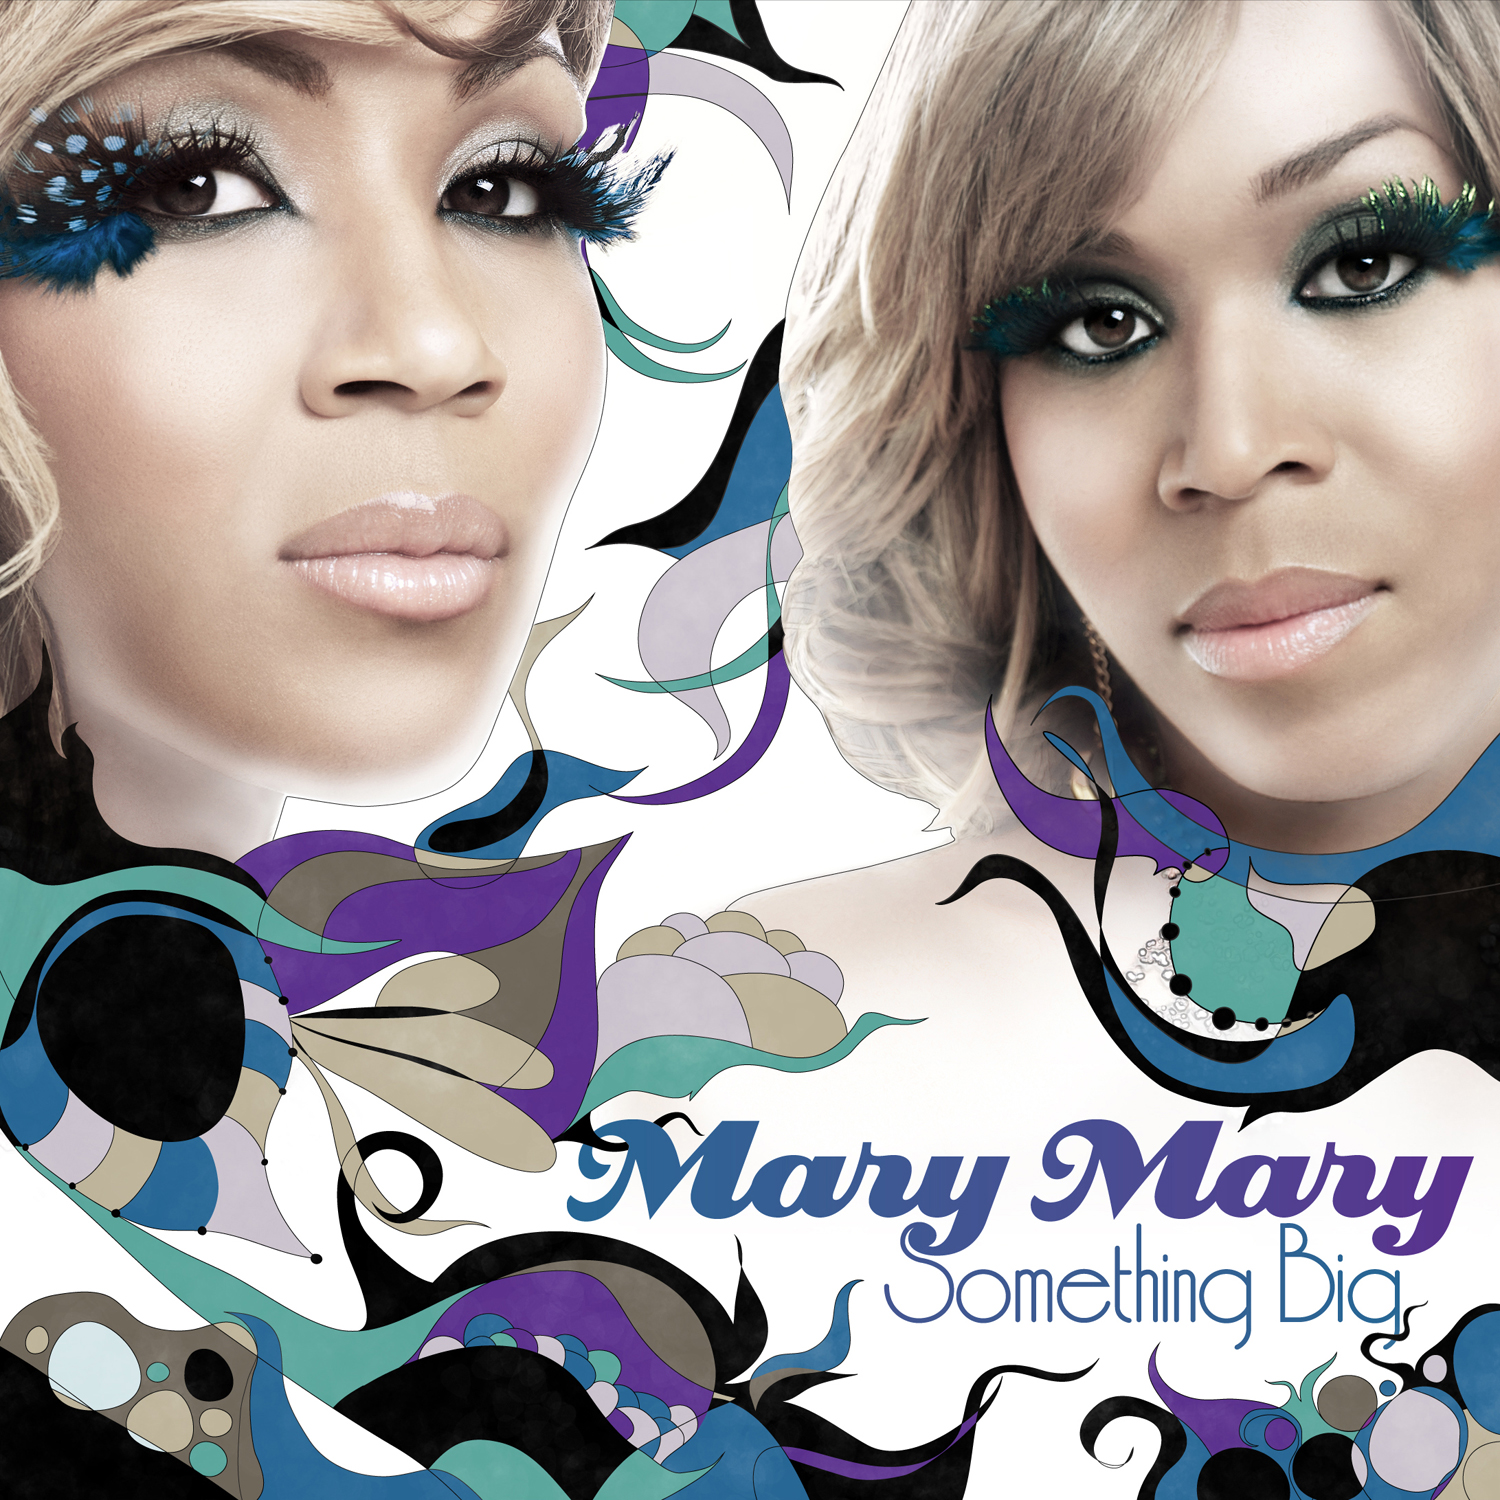 MARY MARY - Download Music | Free Music Downloads